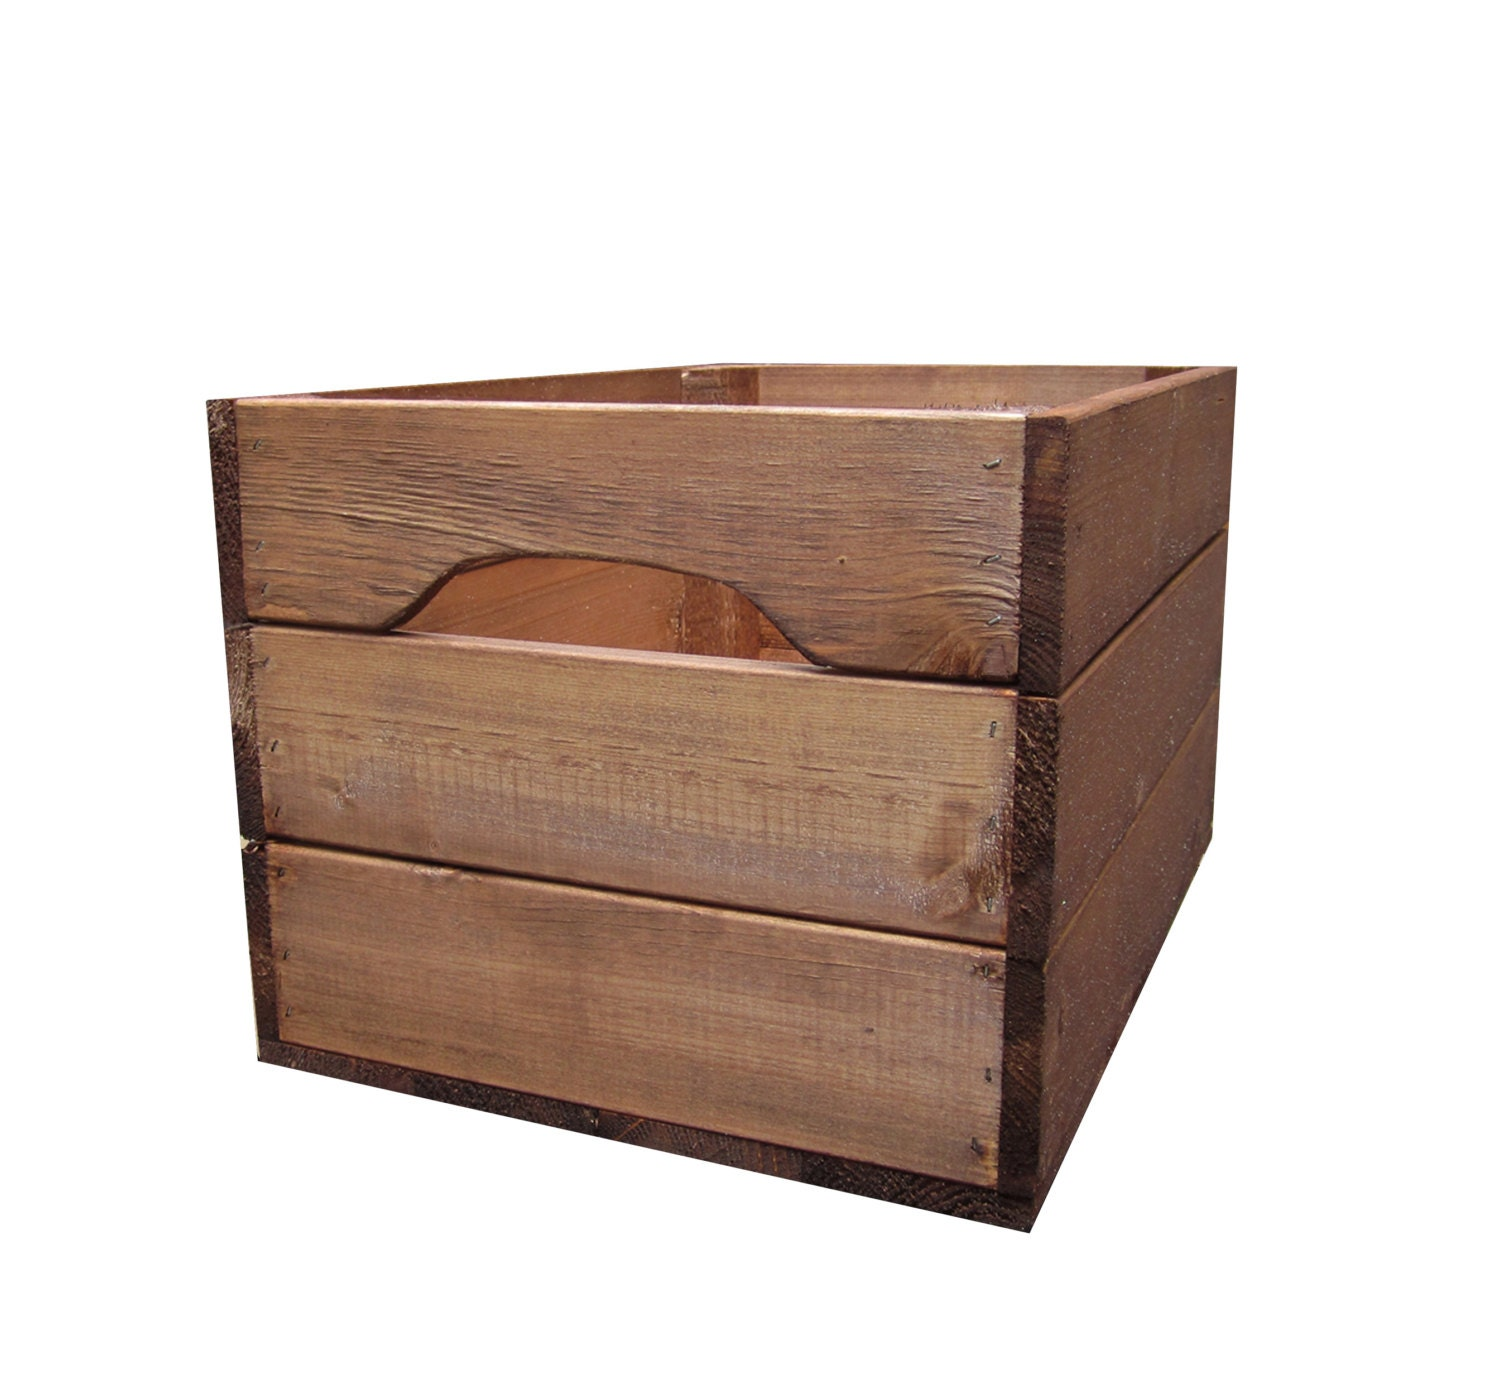 Large rustic farmhouse wooden crate storage box for Re storage crate